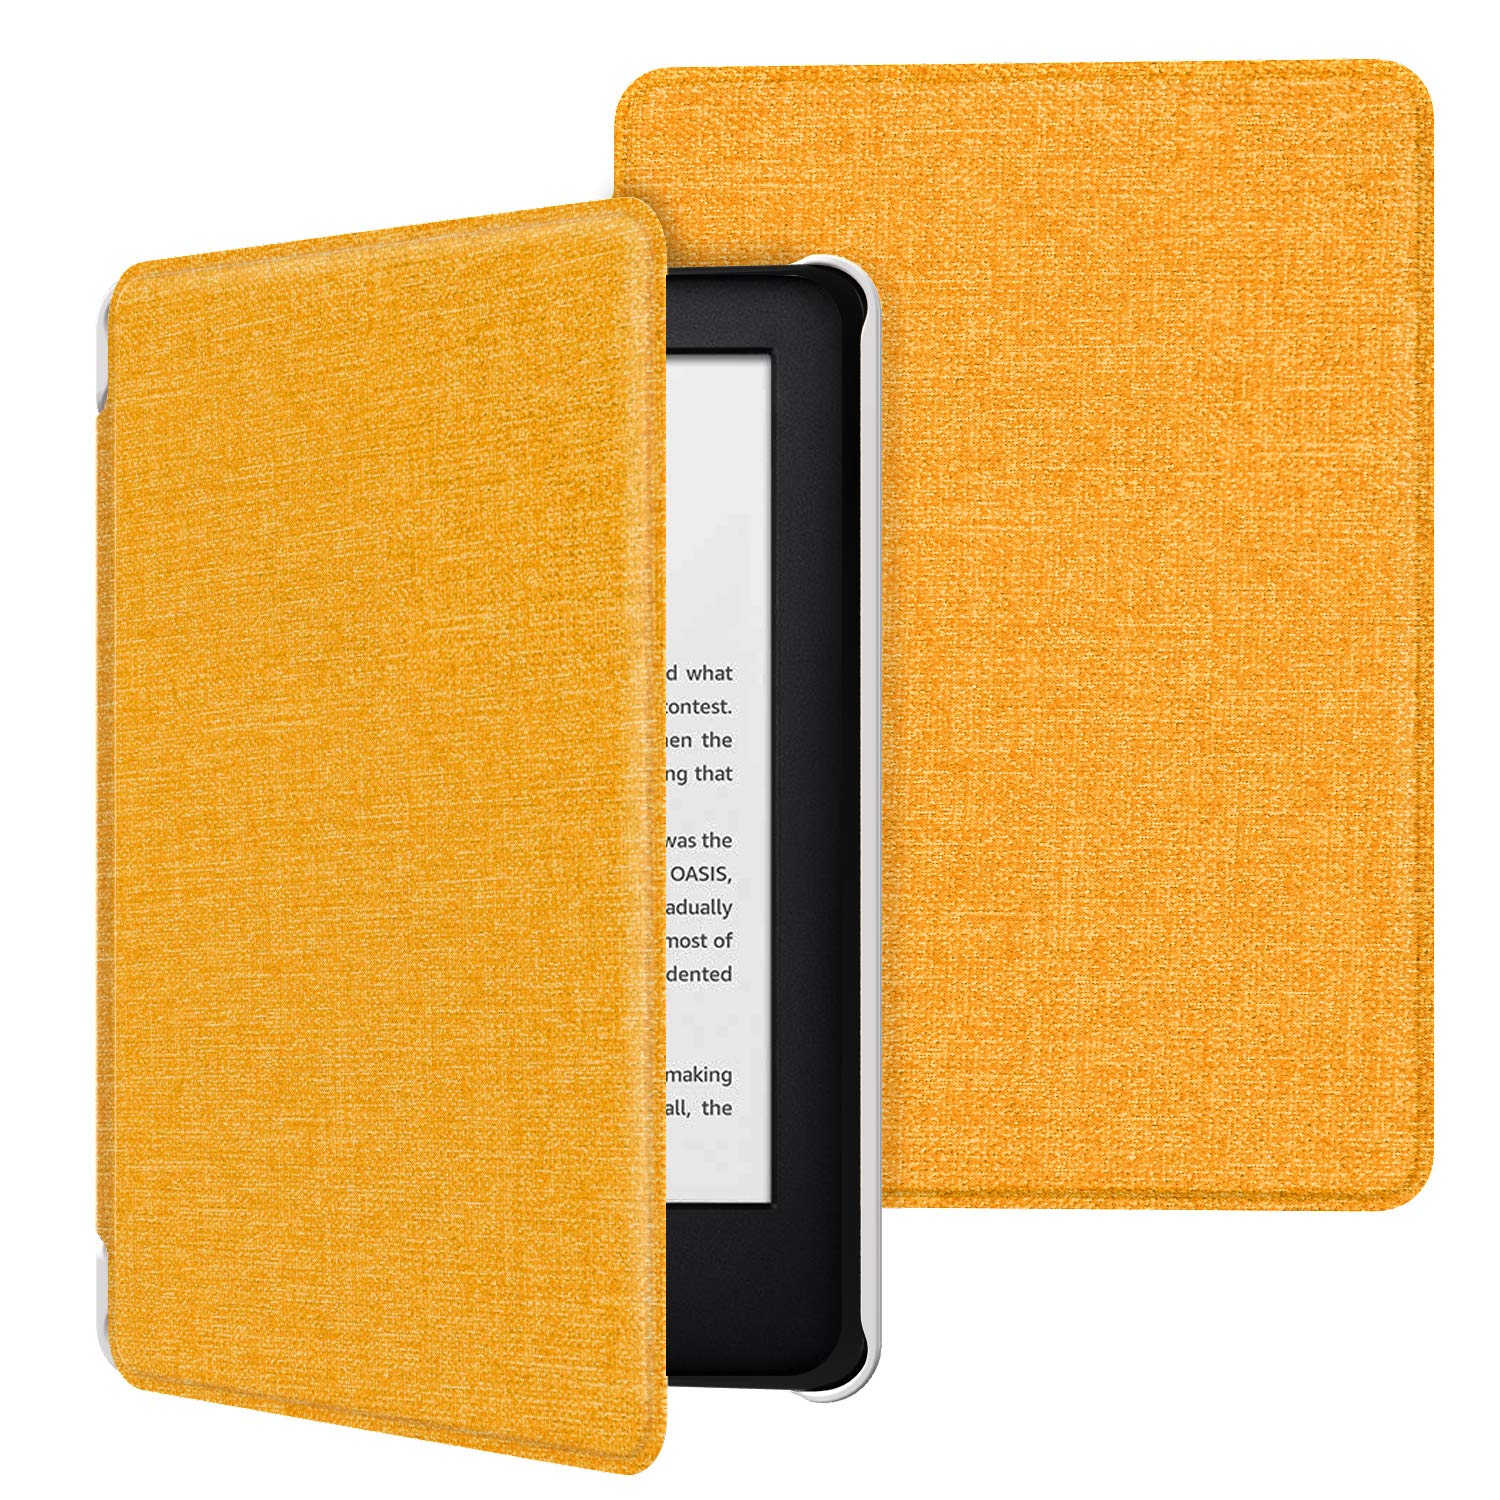 MoKo Funda Compatible con Kindle E-Reader 2019 Ultra Delgada Ligera Smart-Shell Soporte Cover Case Compatible con Kindle 10th Generation 2019 Release Dibujo/ Lineal